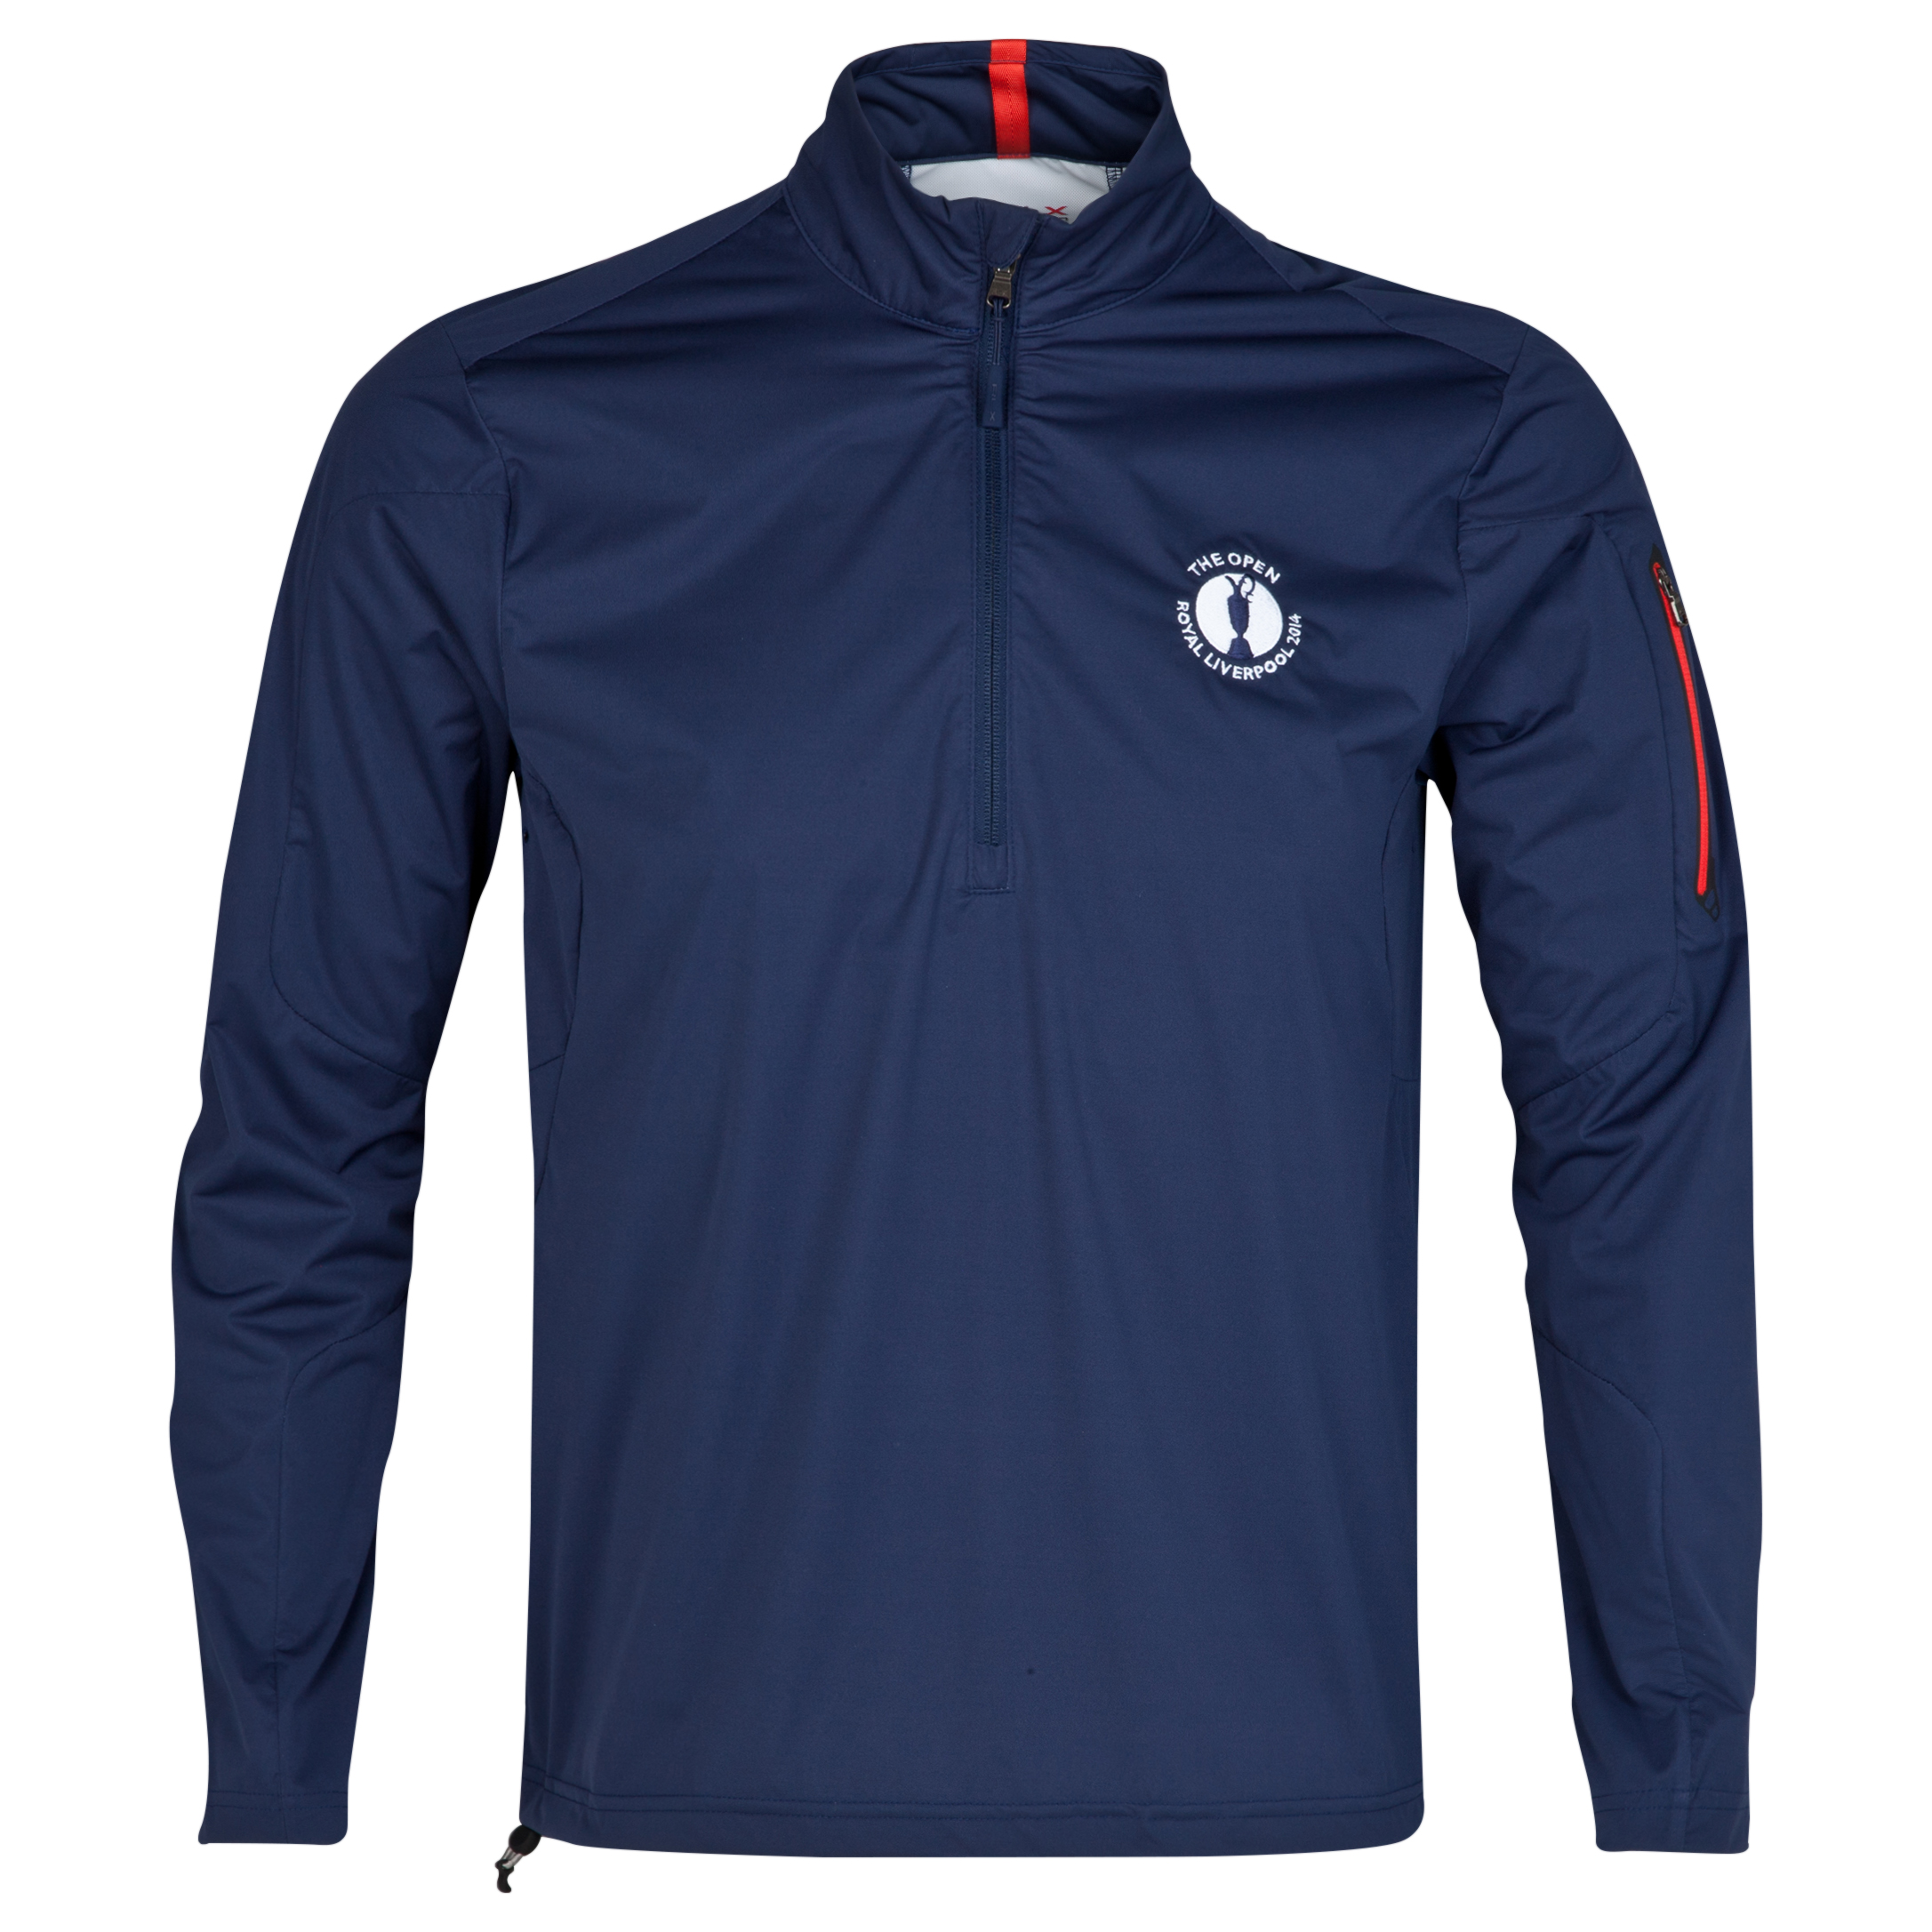 The Open Championship Royal Liverpool 2014 RLX 1/2 Zip Technical Layering Piece Navy